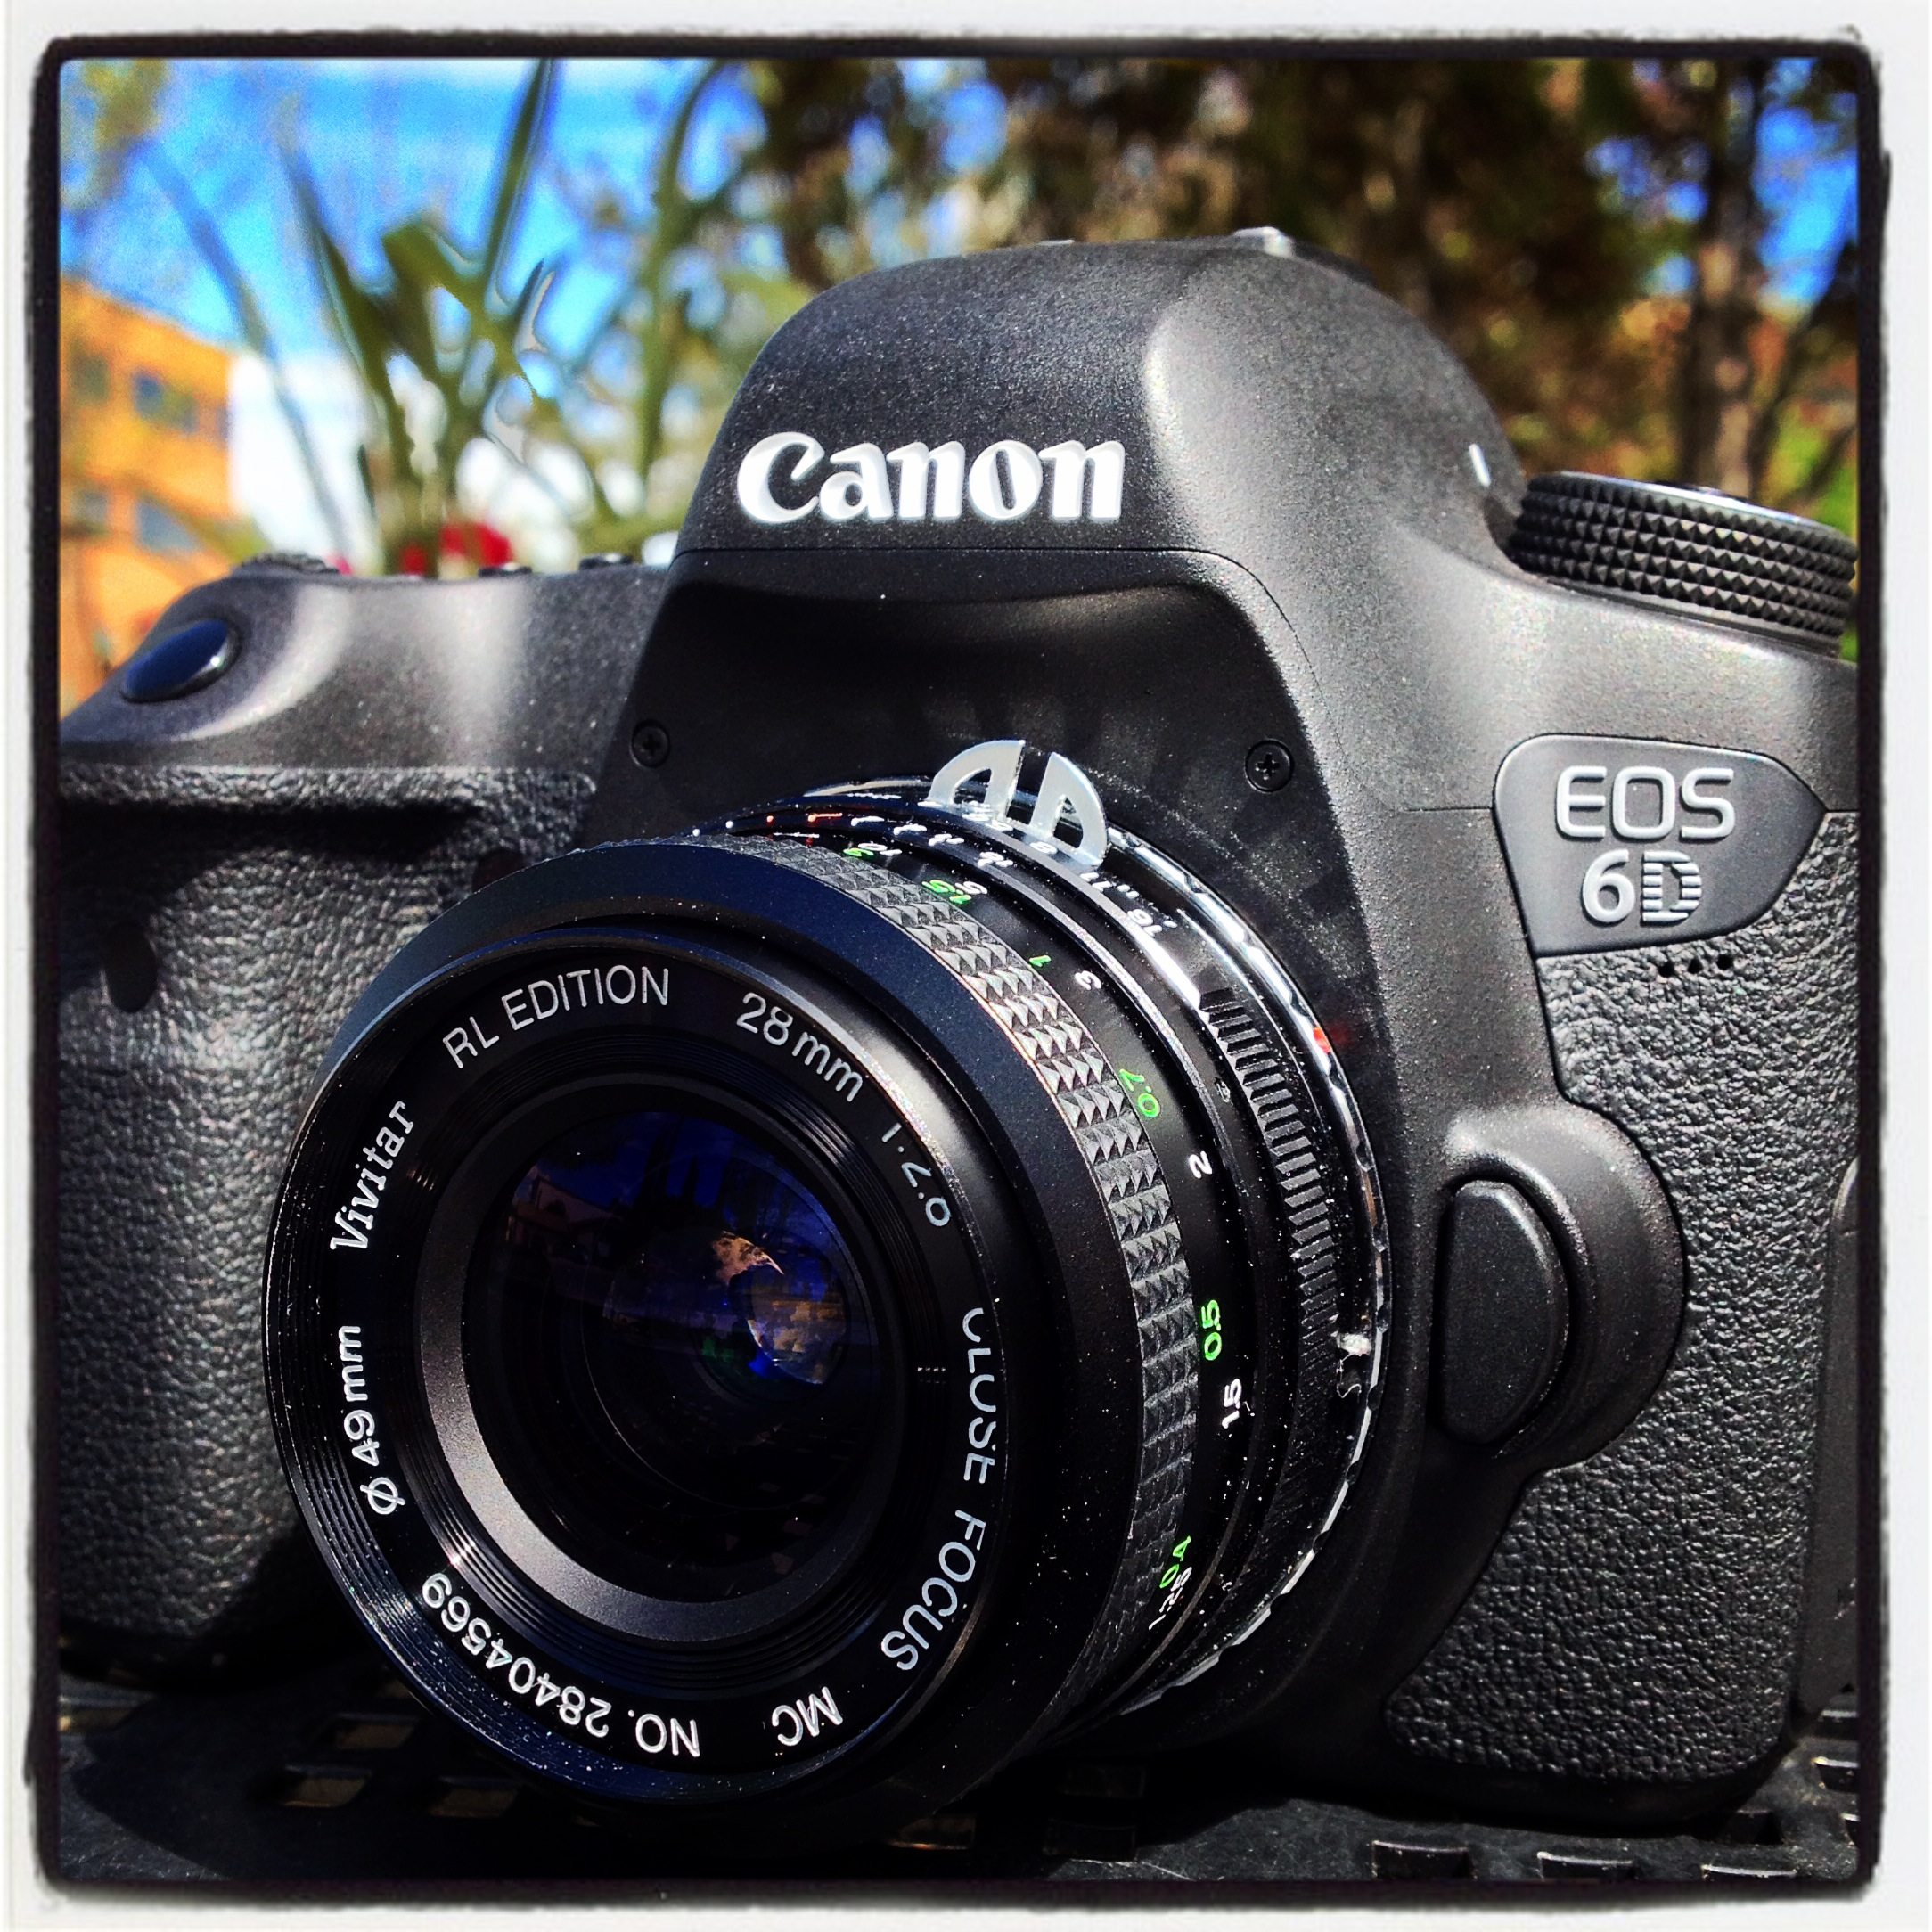 28mm manual focus rob moses photography rh robmosesphotography com canon eos m manual focus lenses Discount Canon EOS Lenses